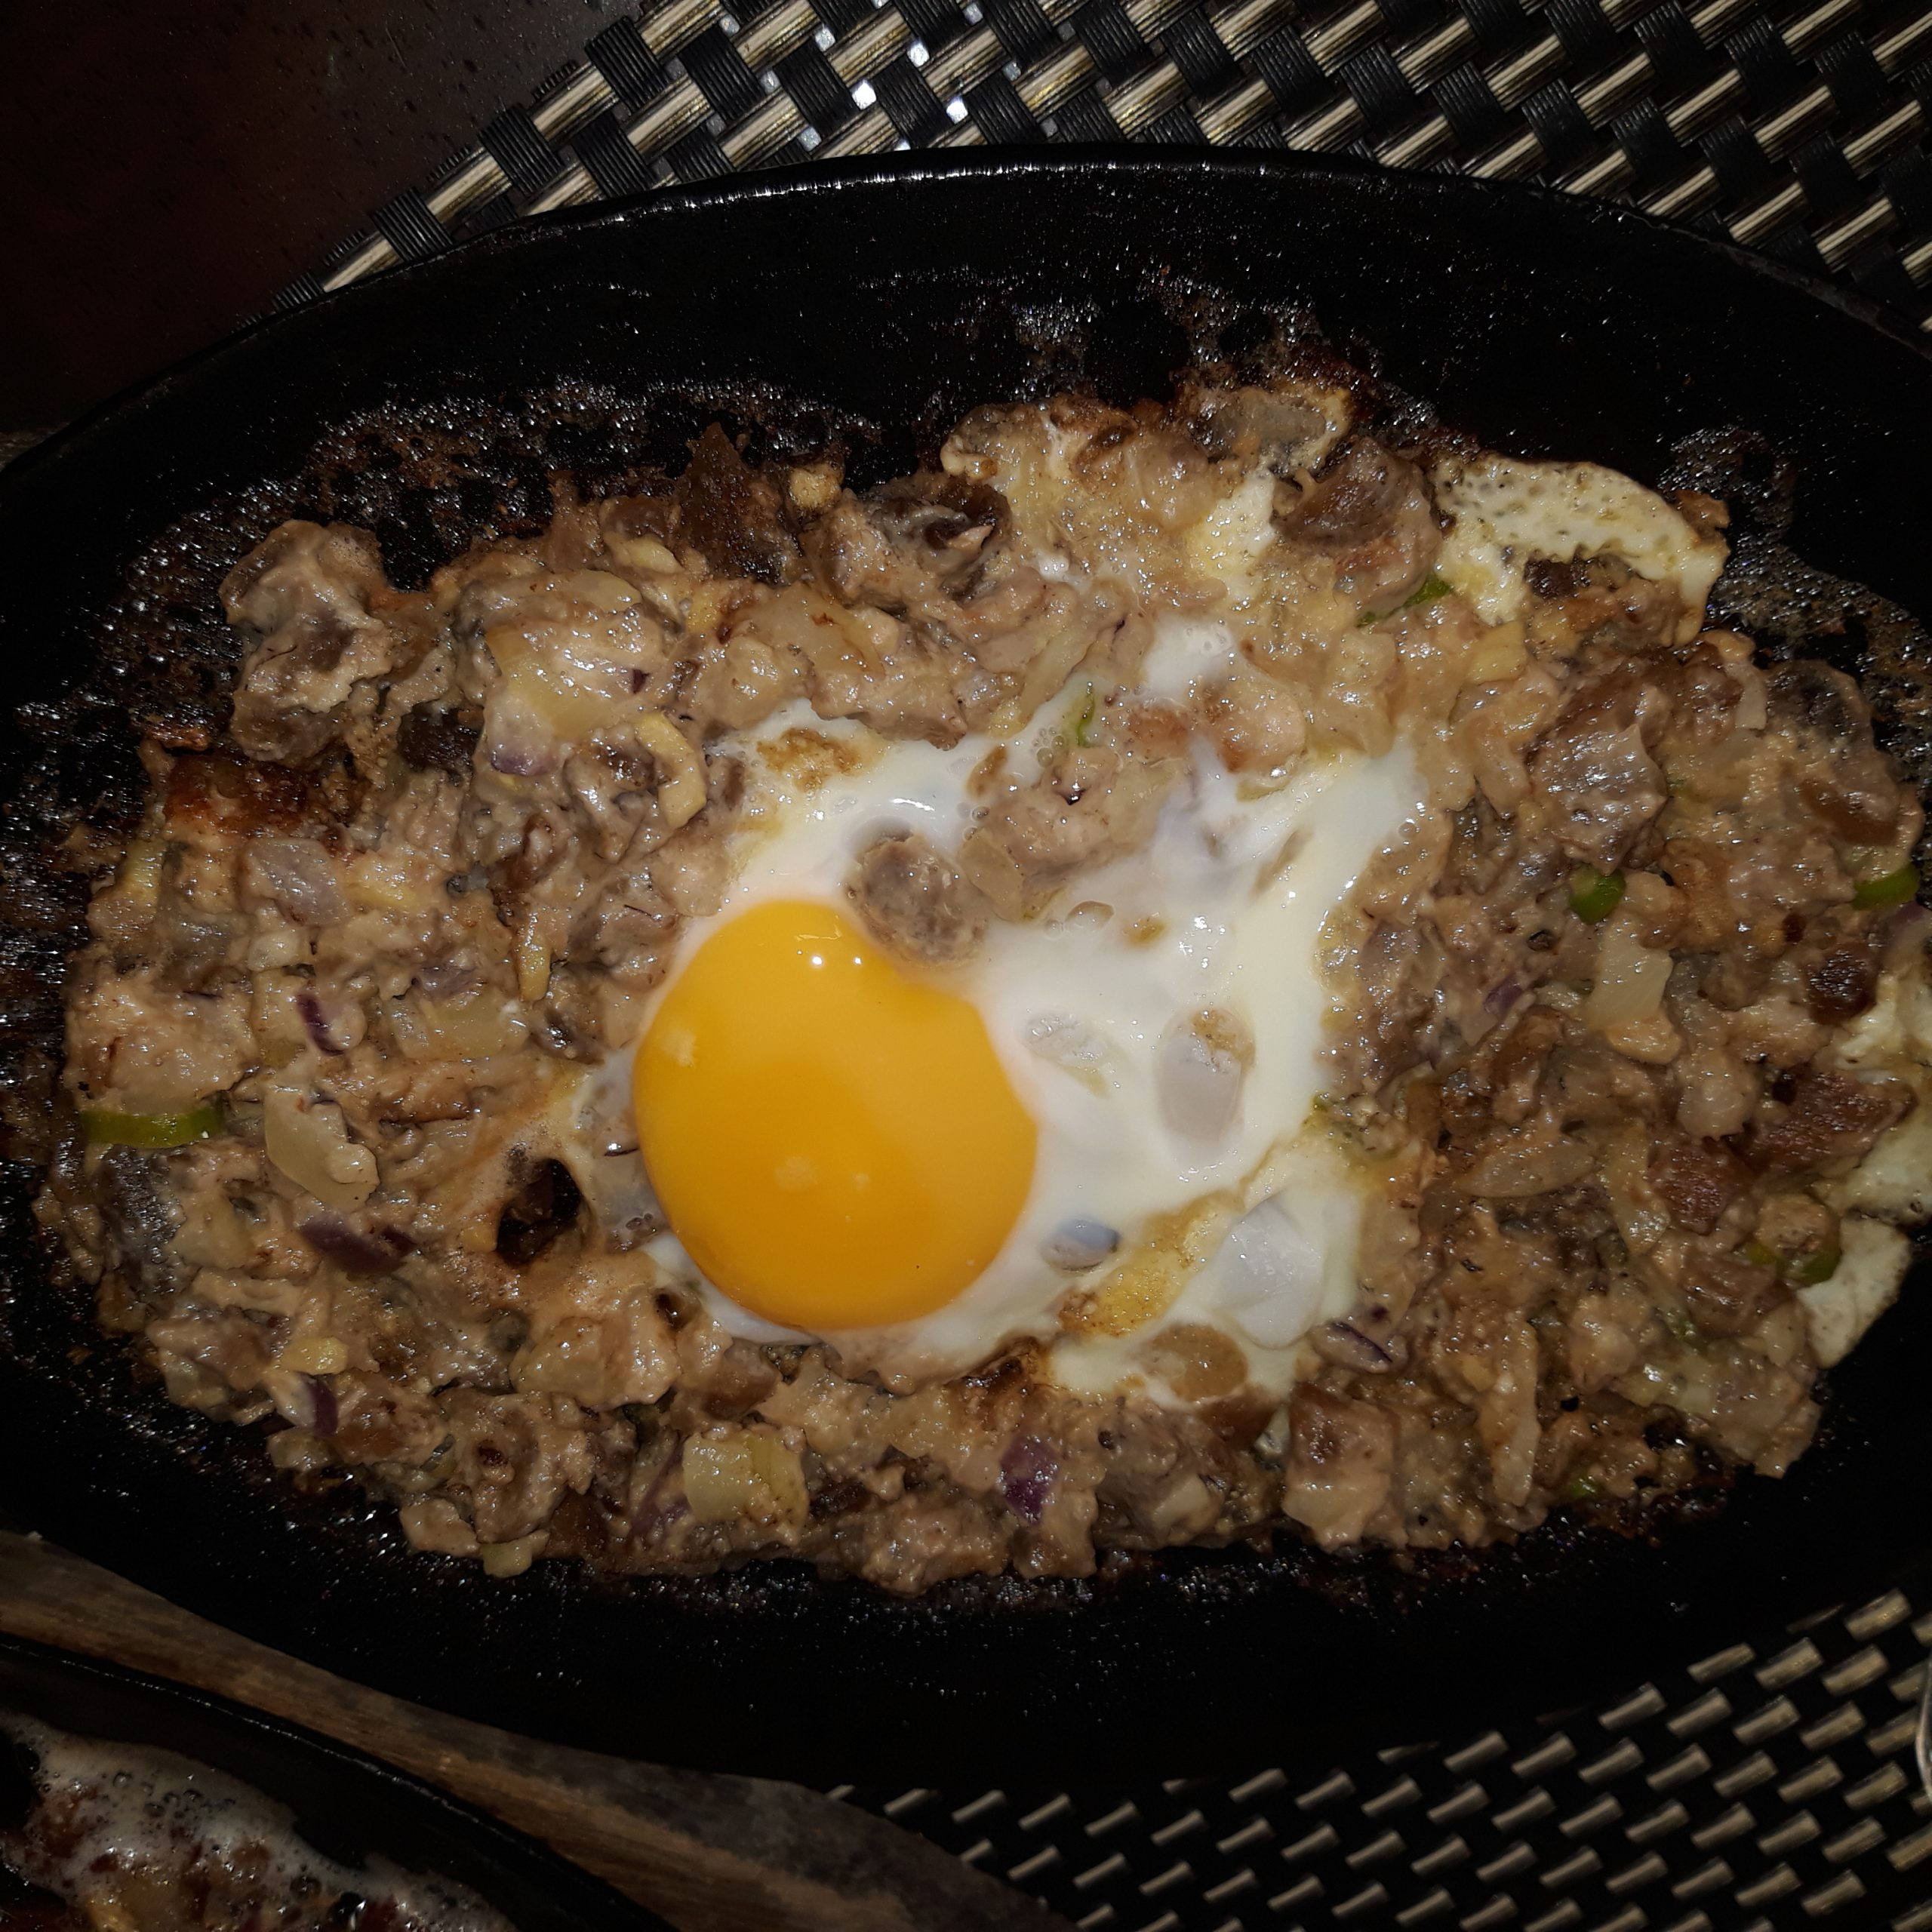 Sisig on a sizzling plate with an egg on top.